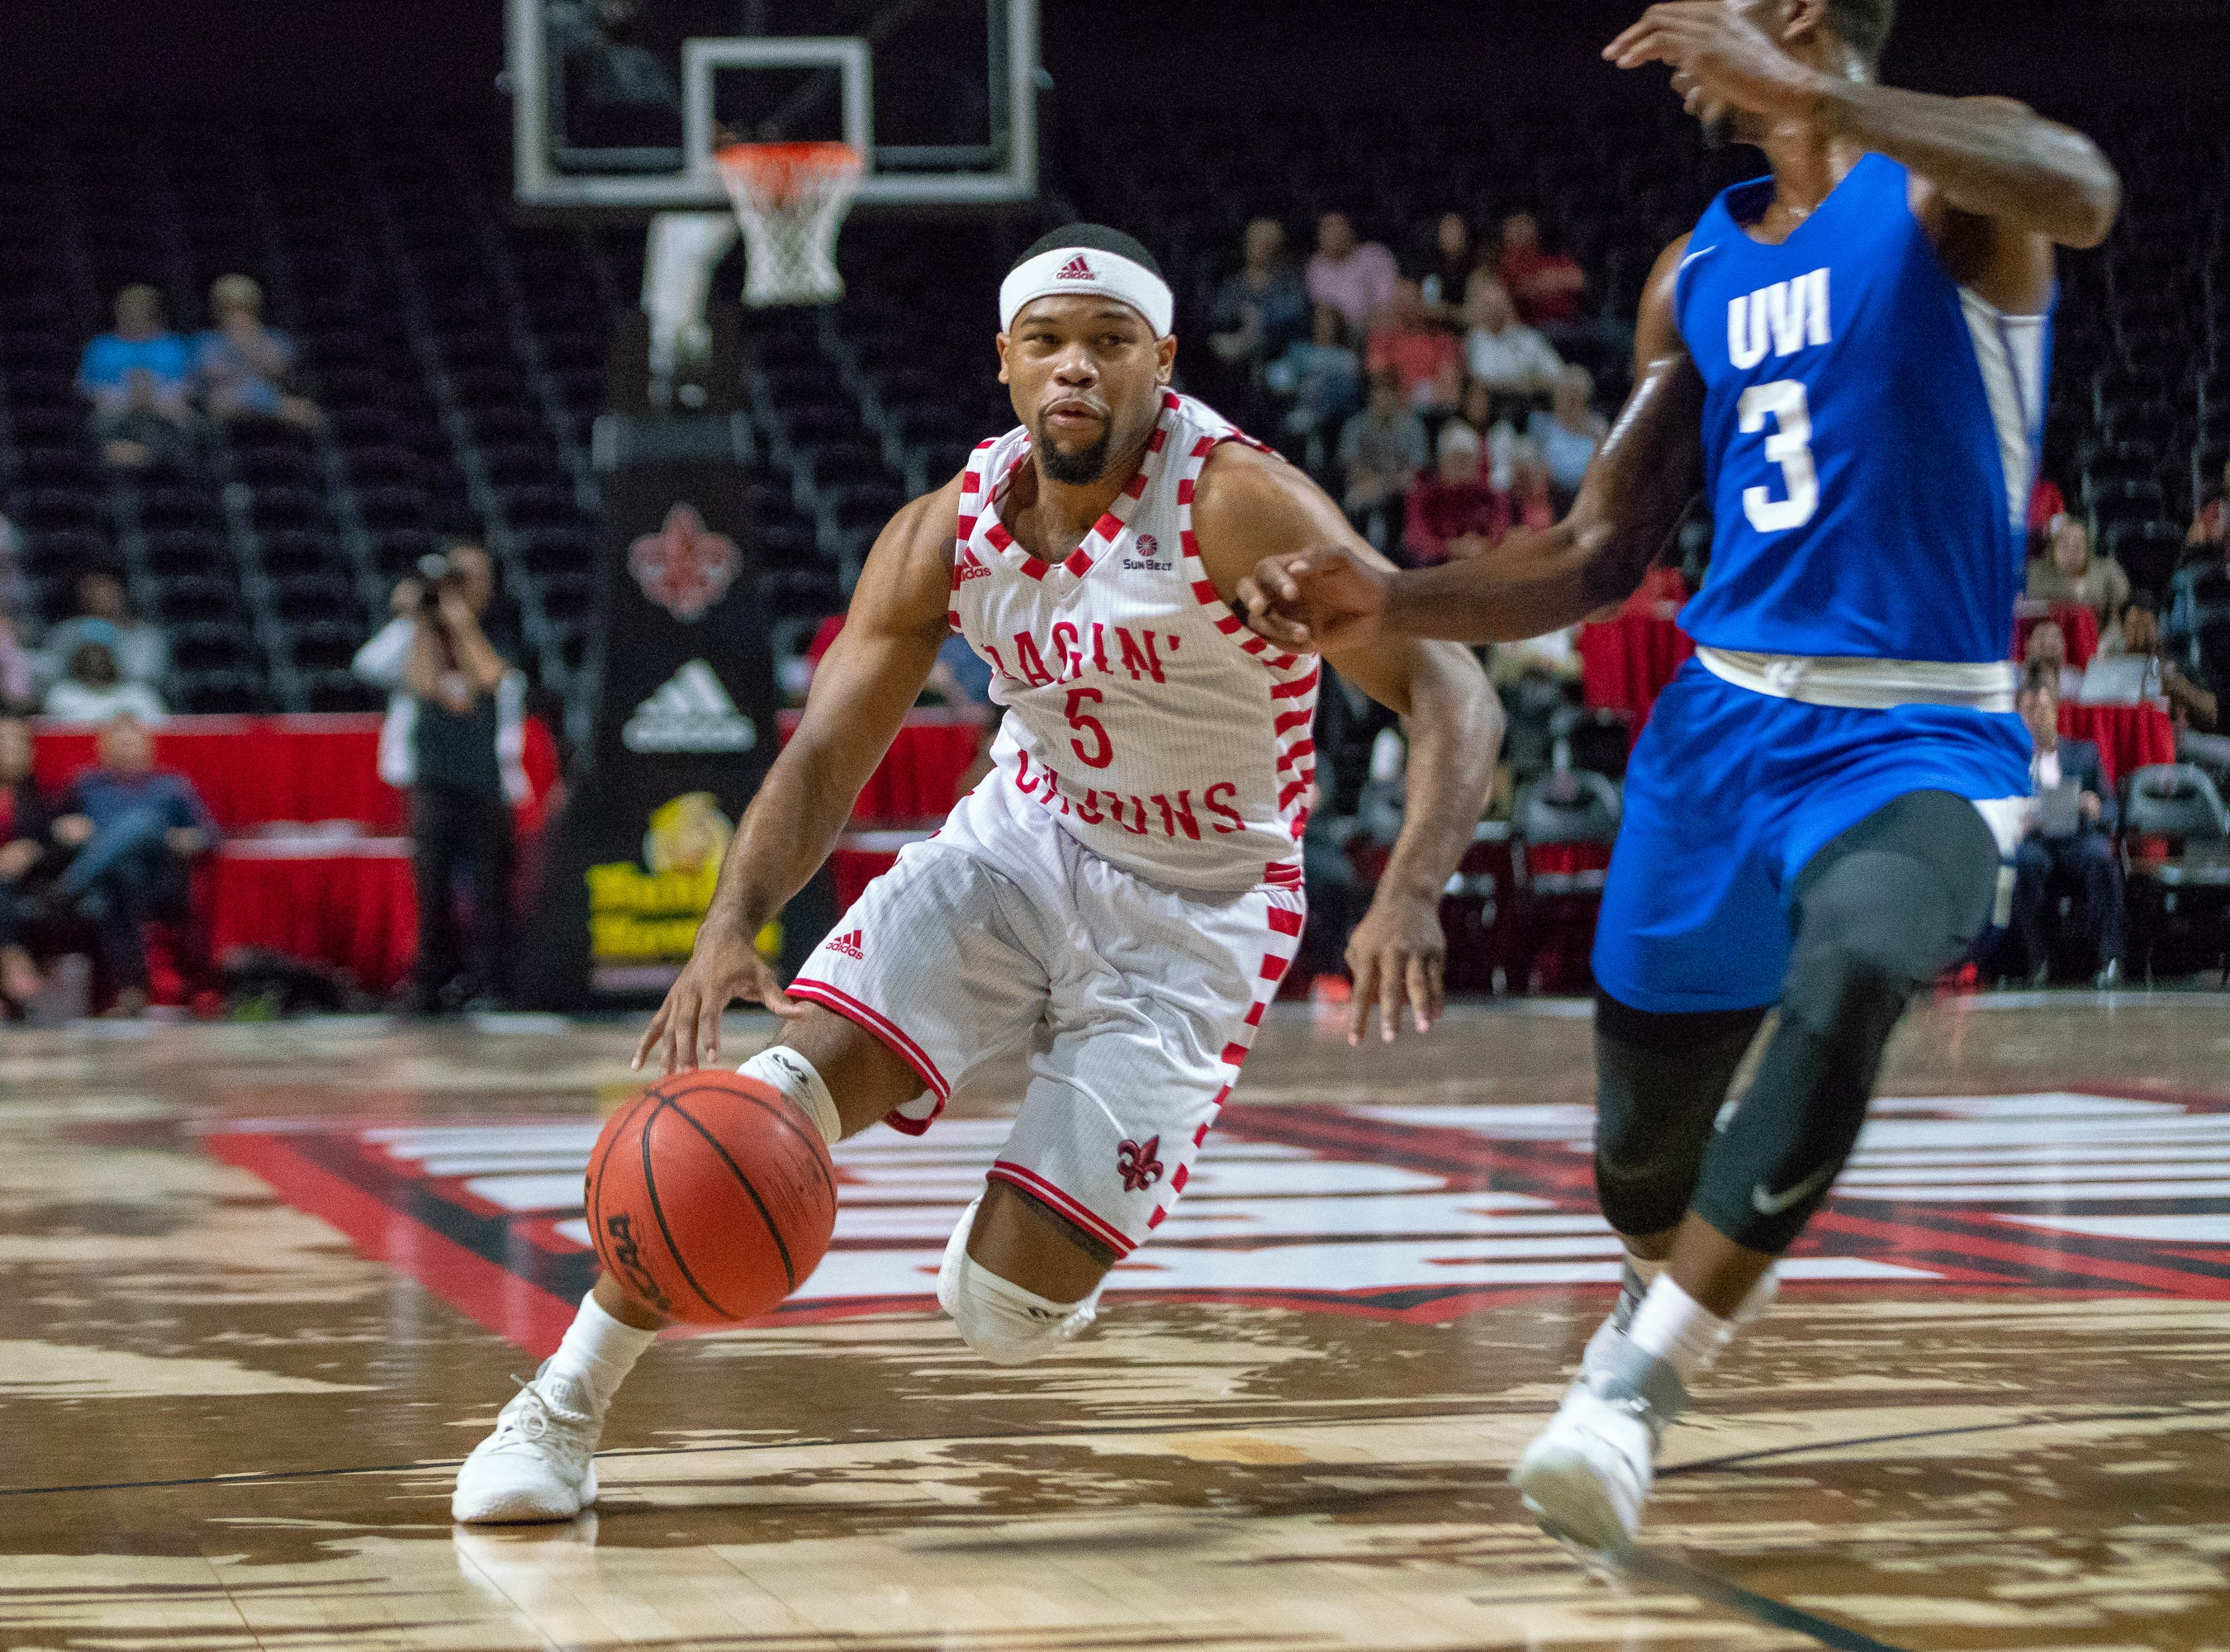 UL's Trajan Wesley drives towards the goal as the Ragin' Cajuns take on the University of the Virgin Islands Buccaneers at the Cajundome on Nov. 6, 2018.